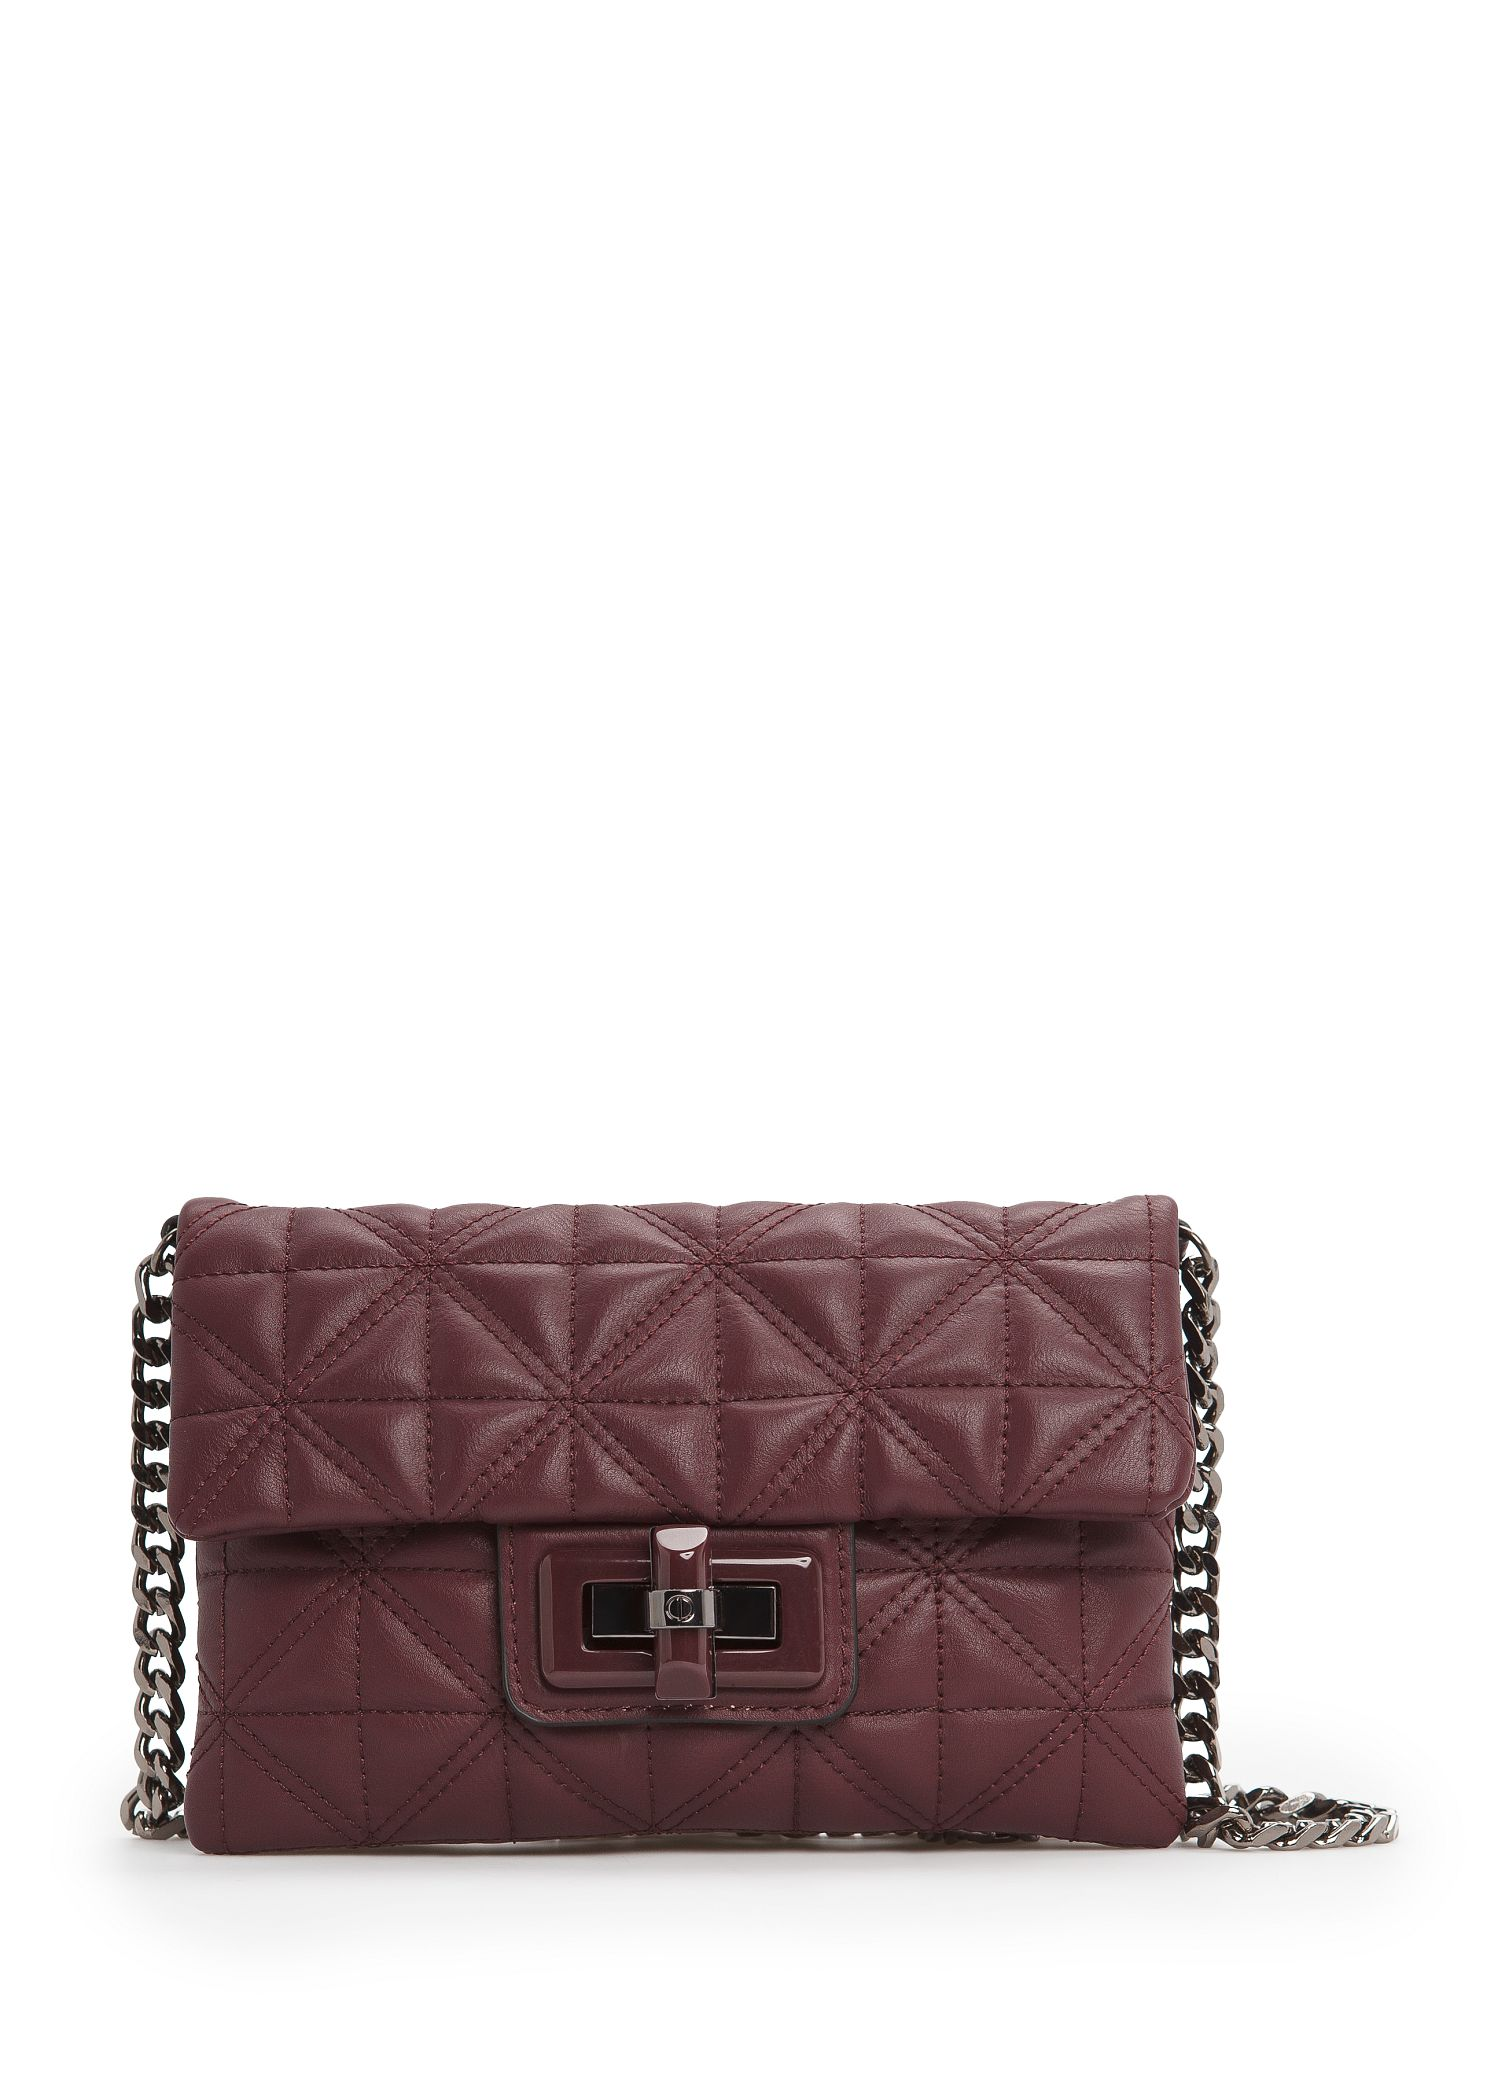 Mango Quilted Small Shoulder Bag in Purple | Lyst